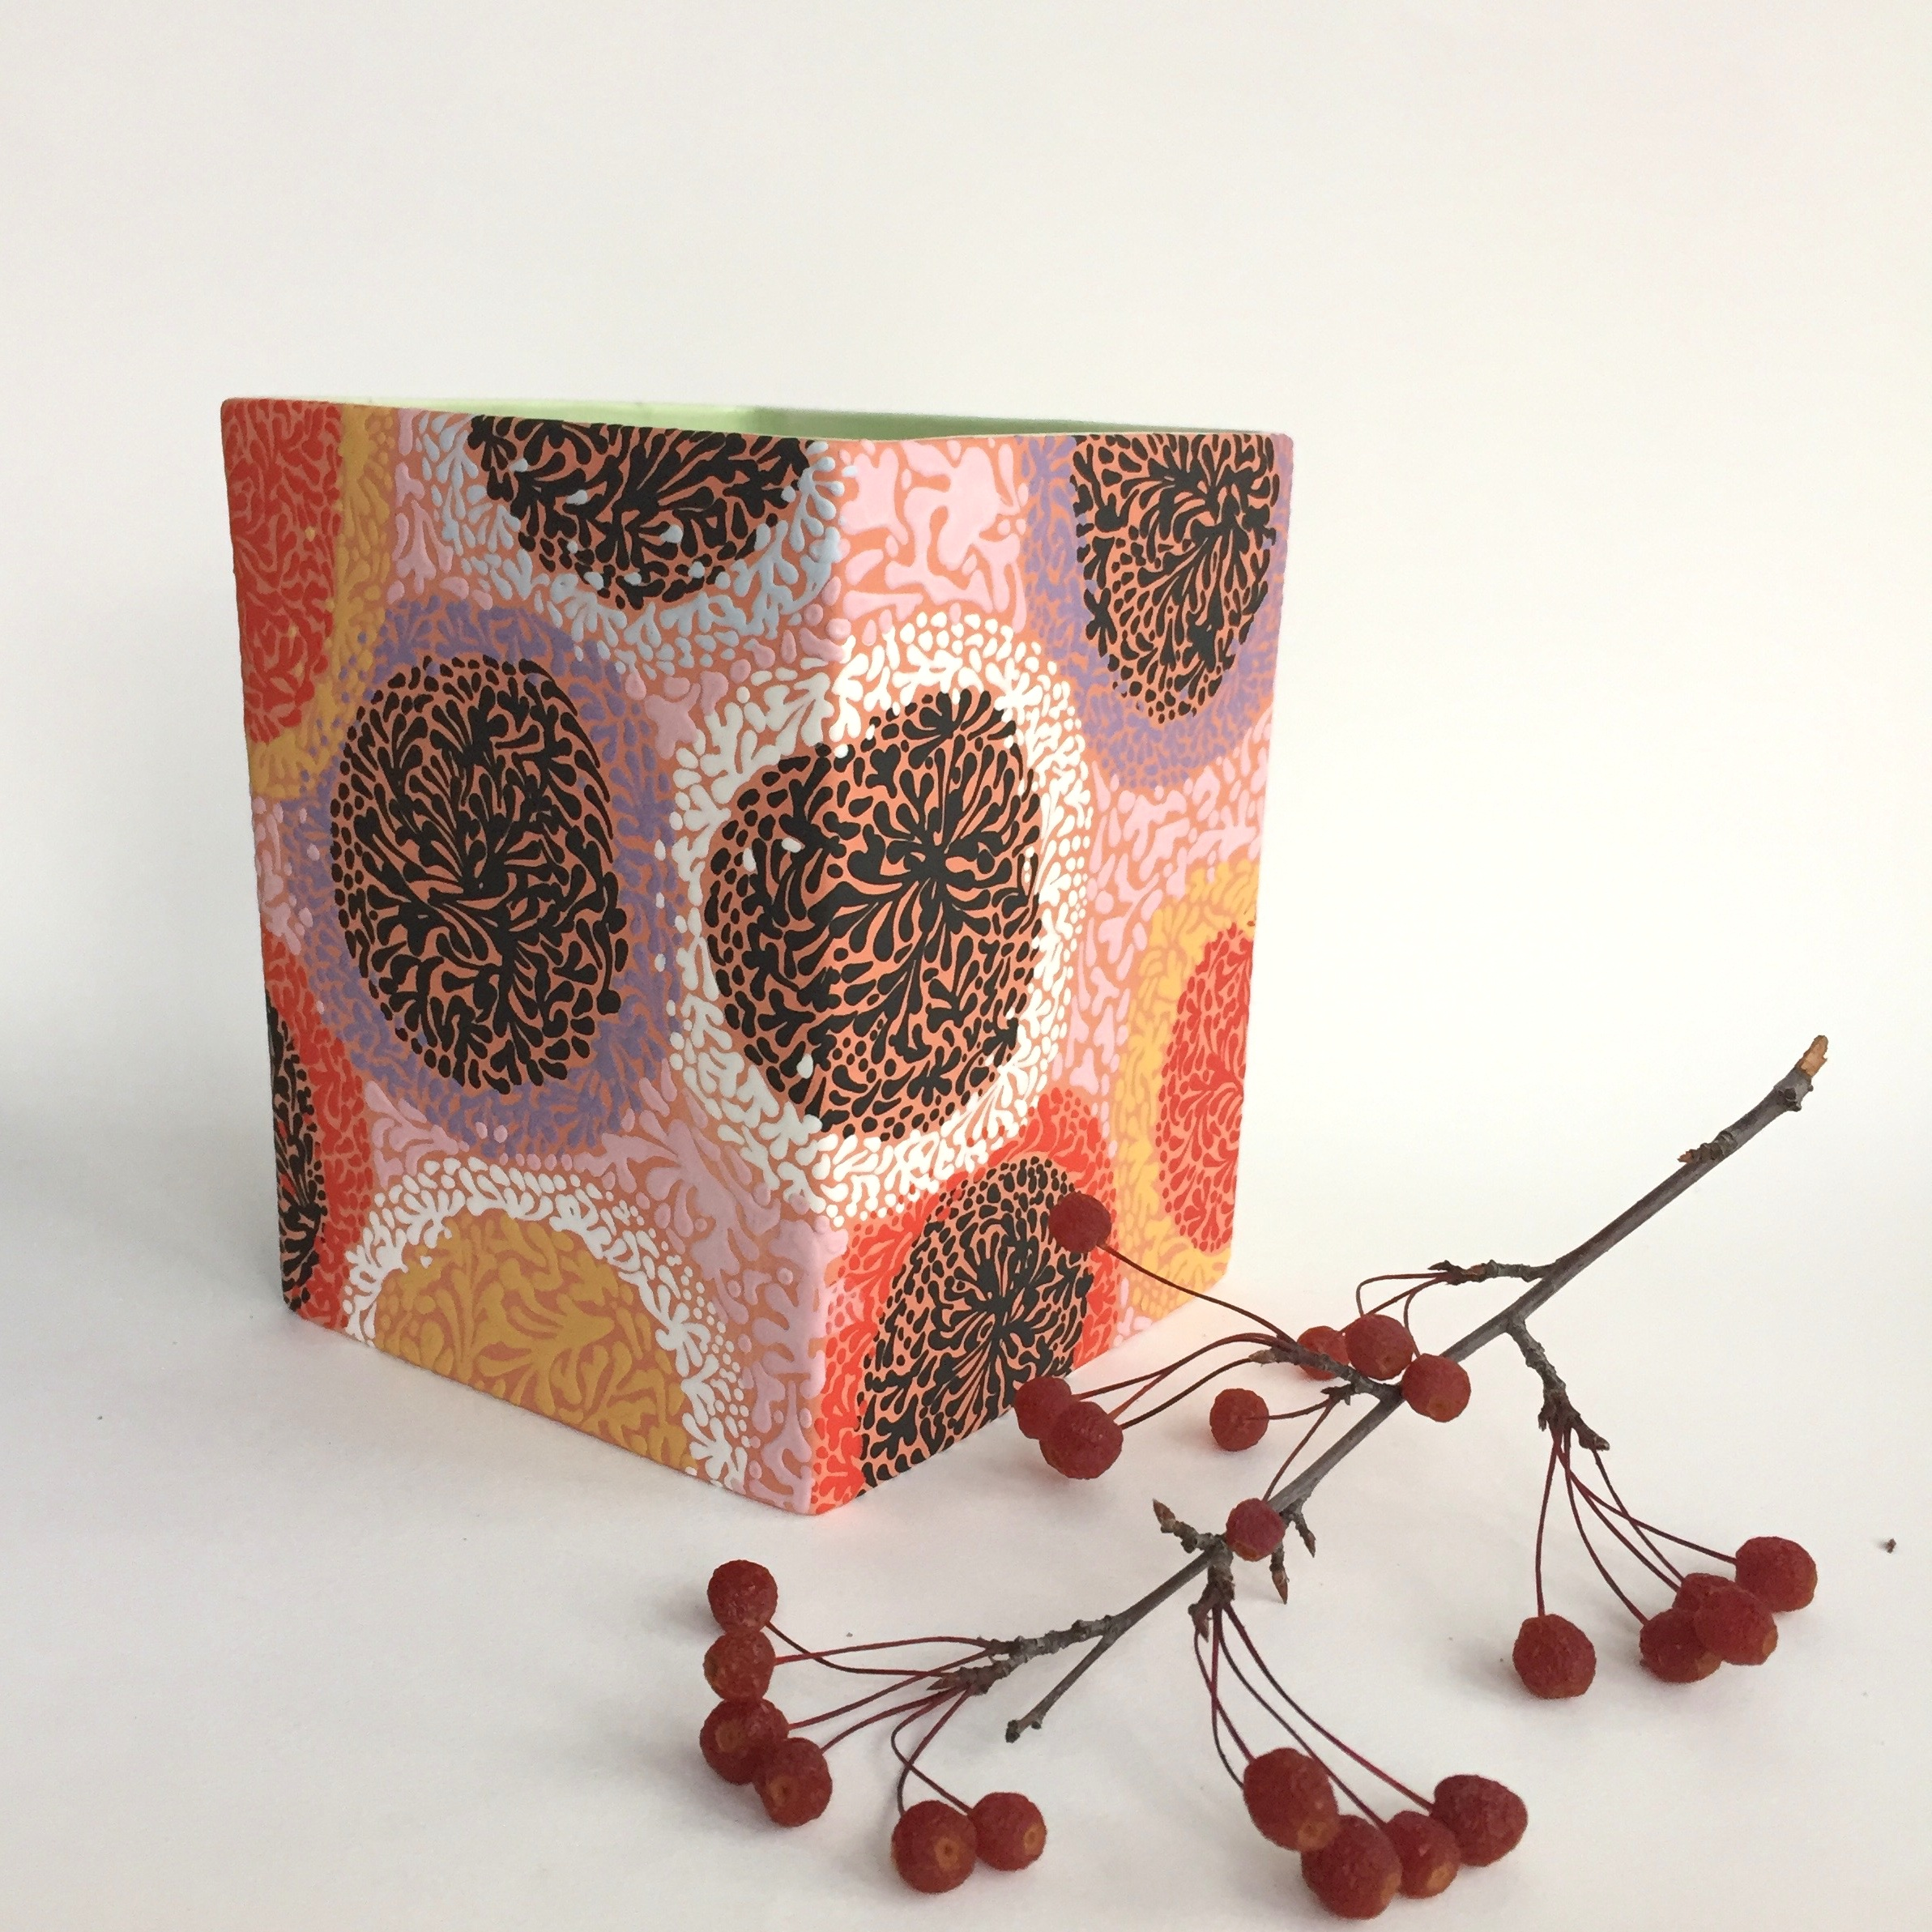 MICROSCOPIC SPRIG SQUARE VASE